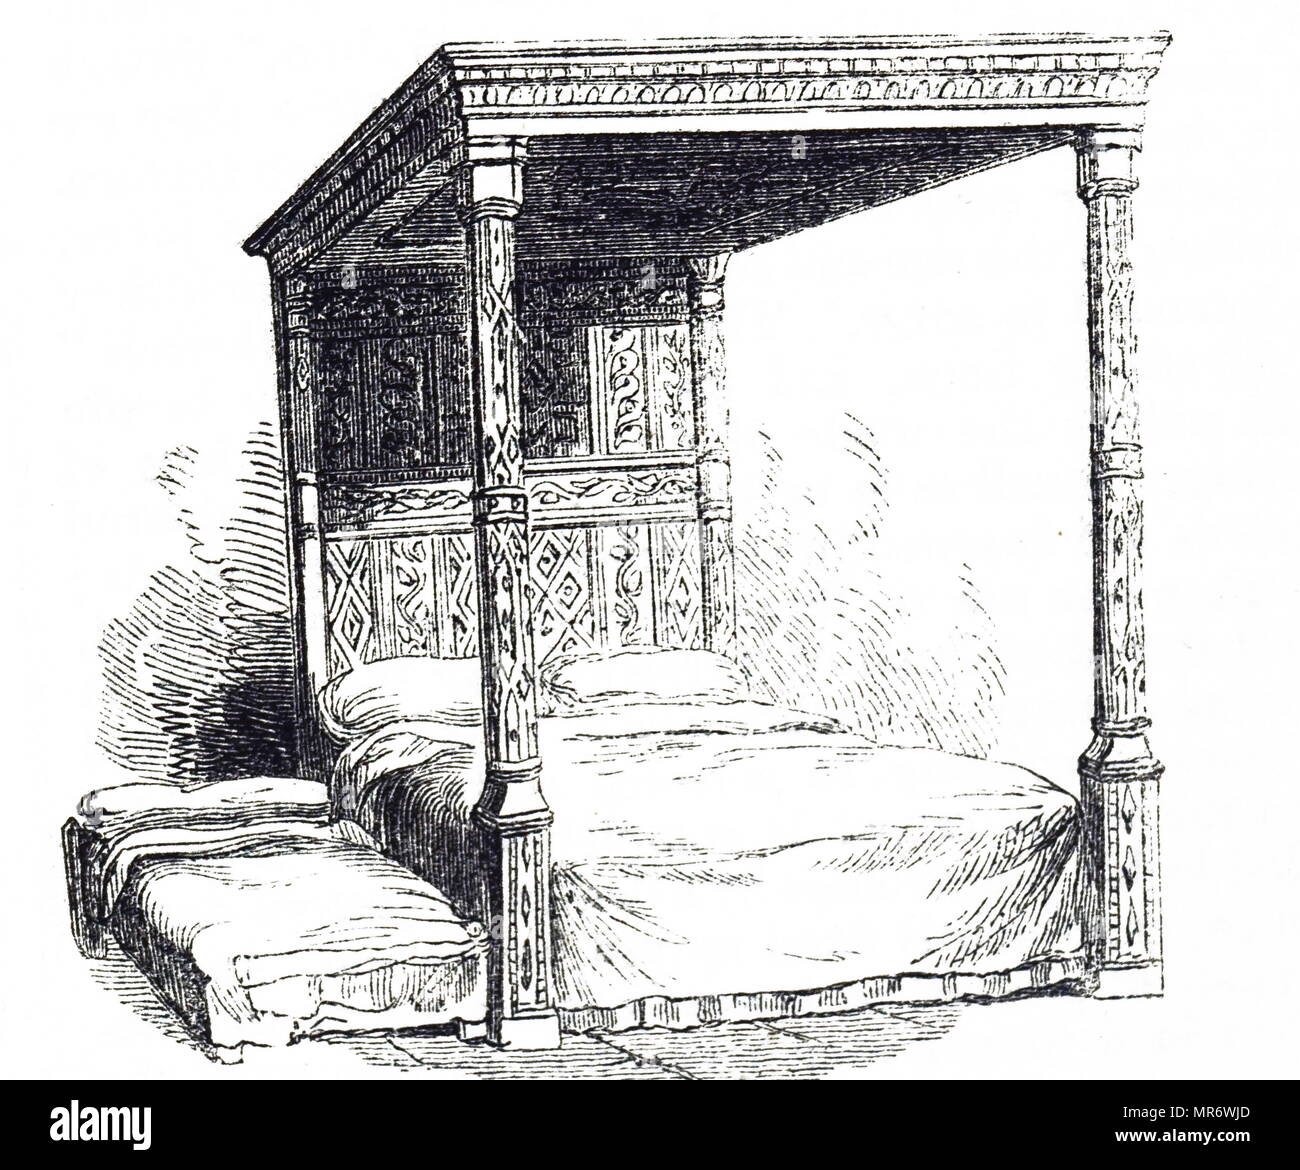 Engraving depicting a 16th century four poster bed, with trundle bed beside it. Dated 19th century - Stock Image